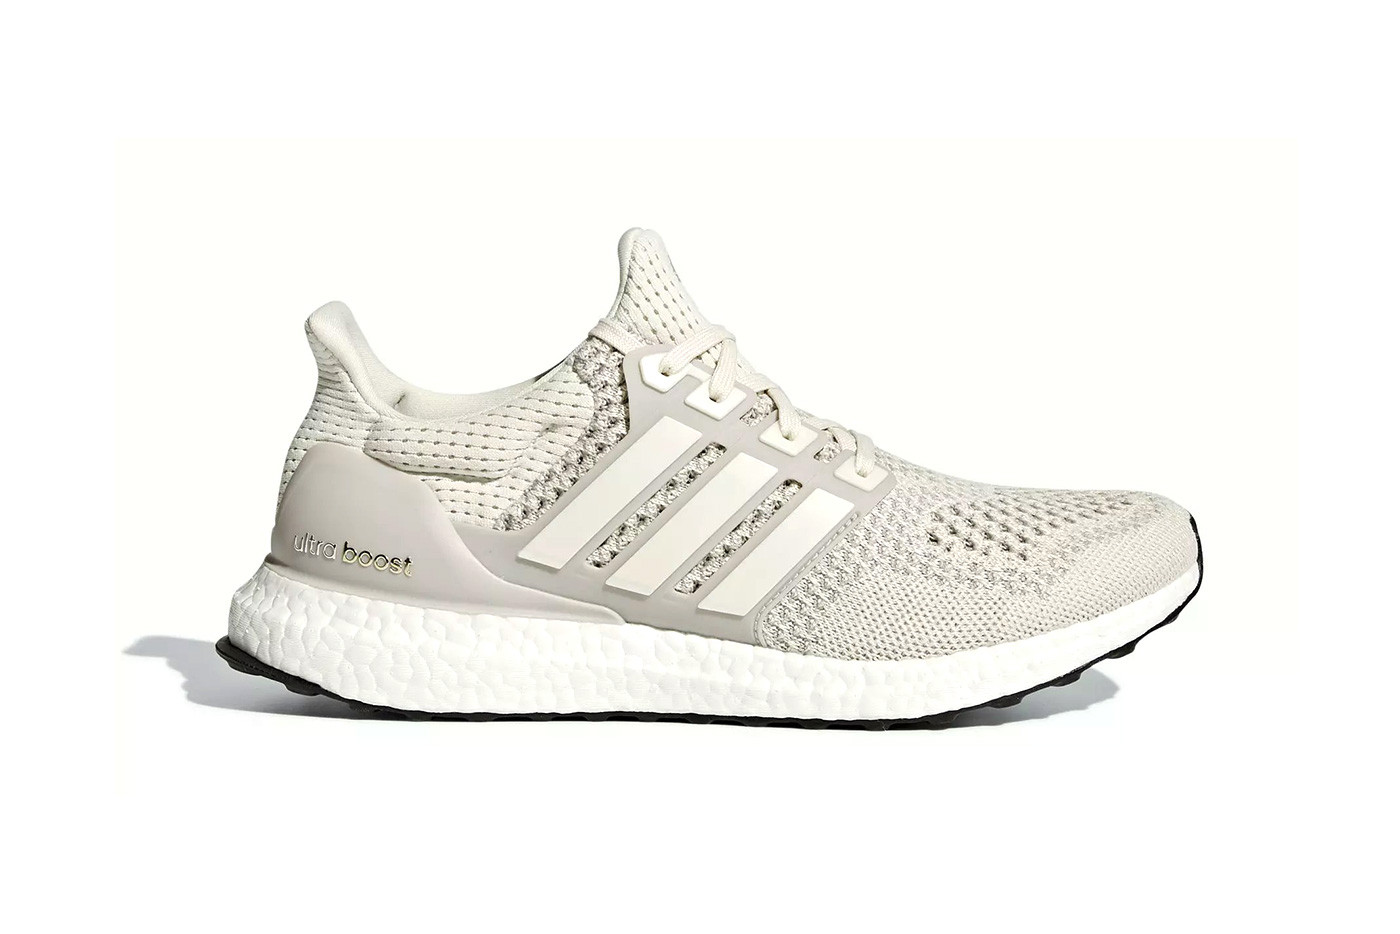 https://snkrvn.com/wp-content/uploads/2018/08/https_2F2Fhypebeast.com2Fimage2F20182F082Fadidas-ultraboost-restock-three-original-colorways-3.jpg